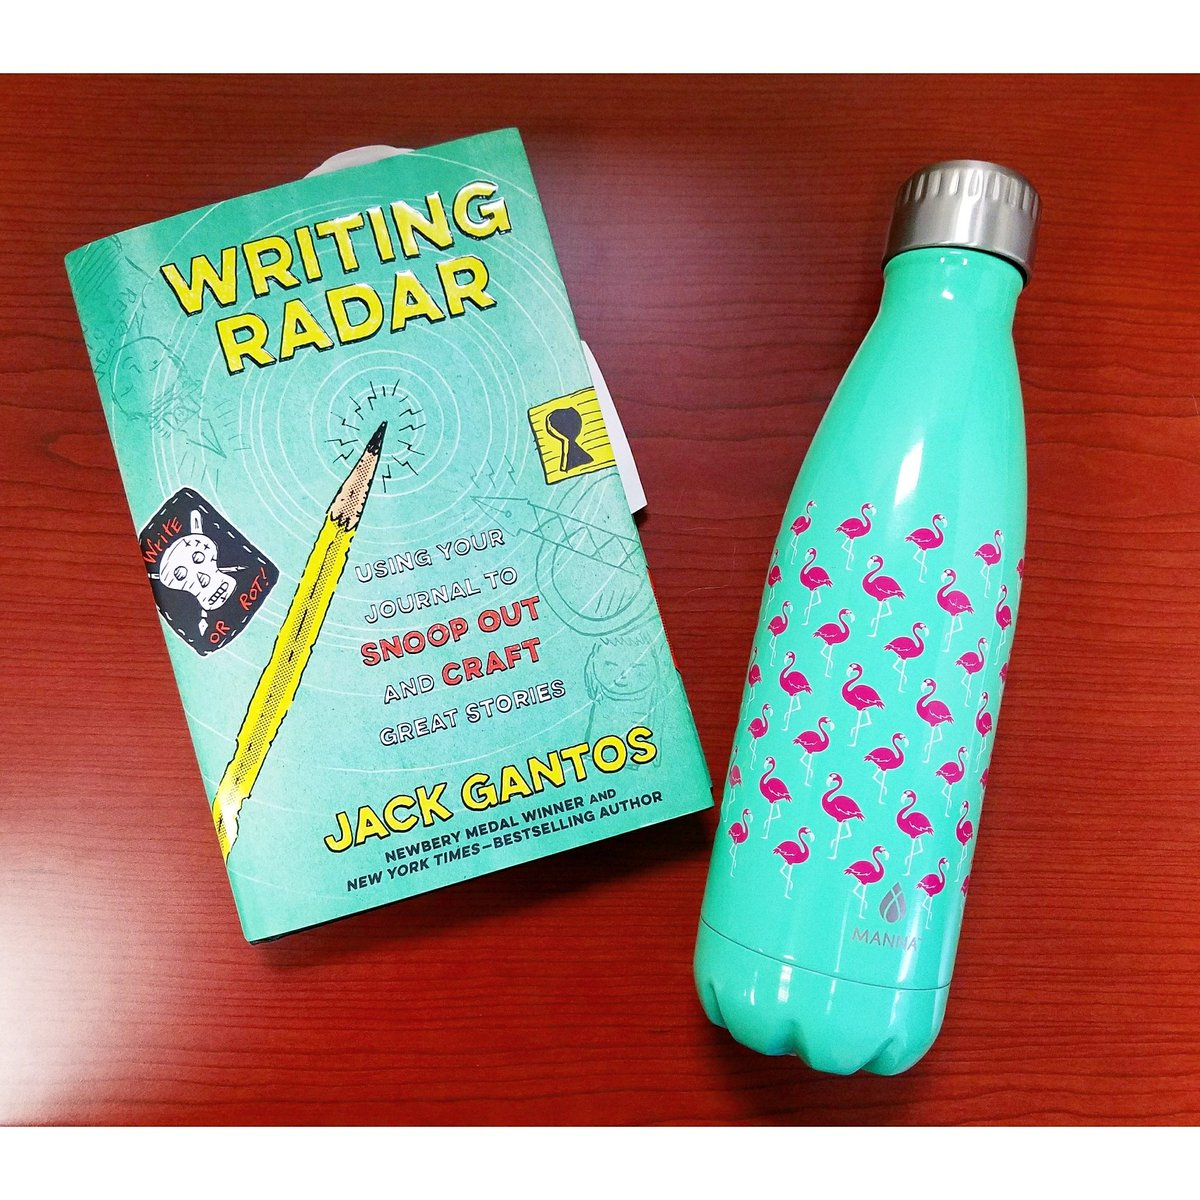 Fulfilling my #civicduty as a a #petitjuror with everything I need --&gt; #WritingRadar by #jackgantos and my #manna #waterbottle from @target Sorry, kids! I won&#39;t be on our #classtrip today. Have fun! #iteach #upperelementary<br>http://pic.twitter.com/2NZtzi6FXE